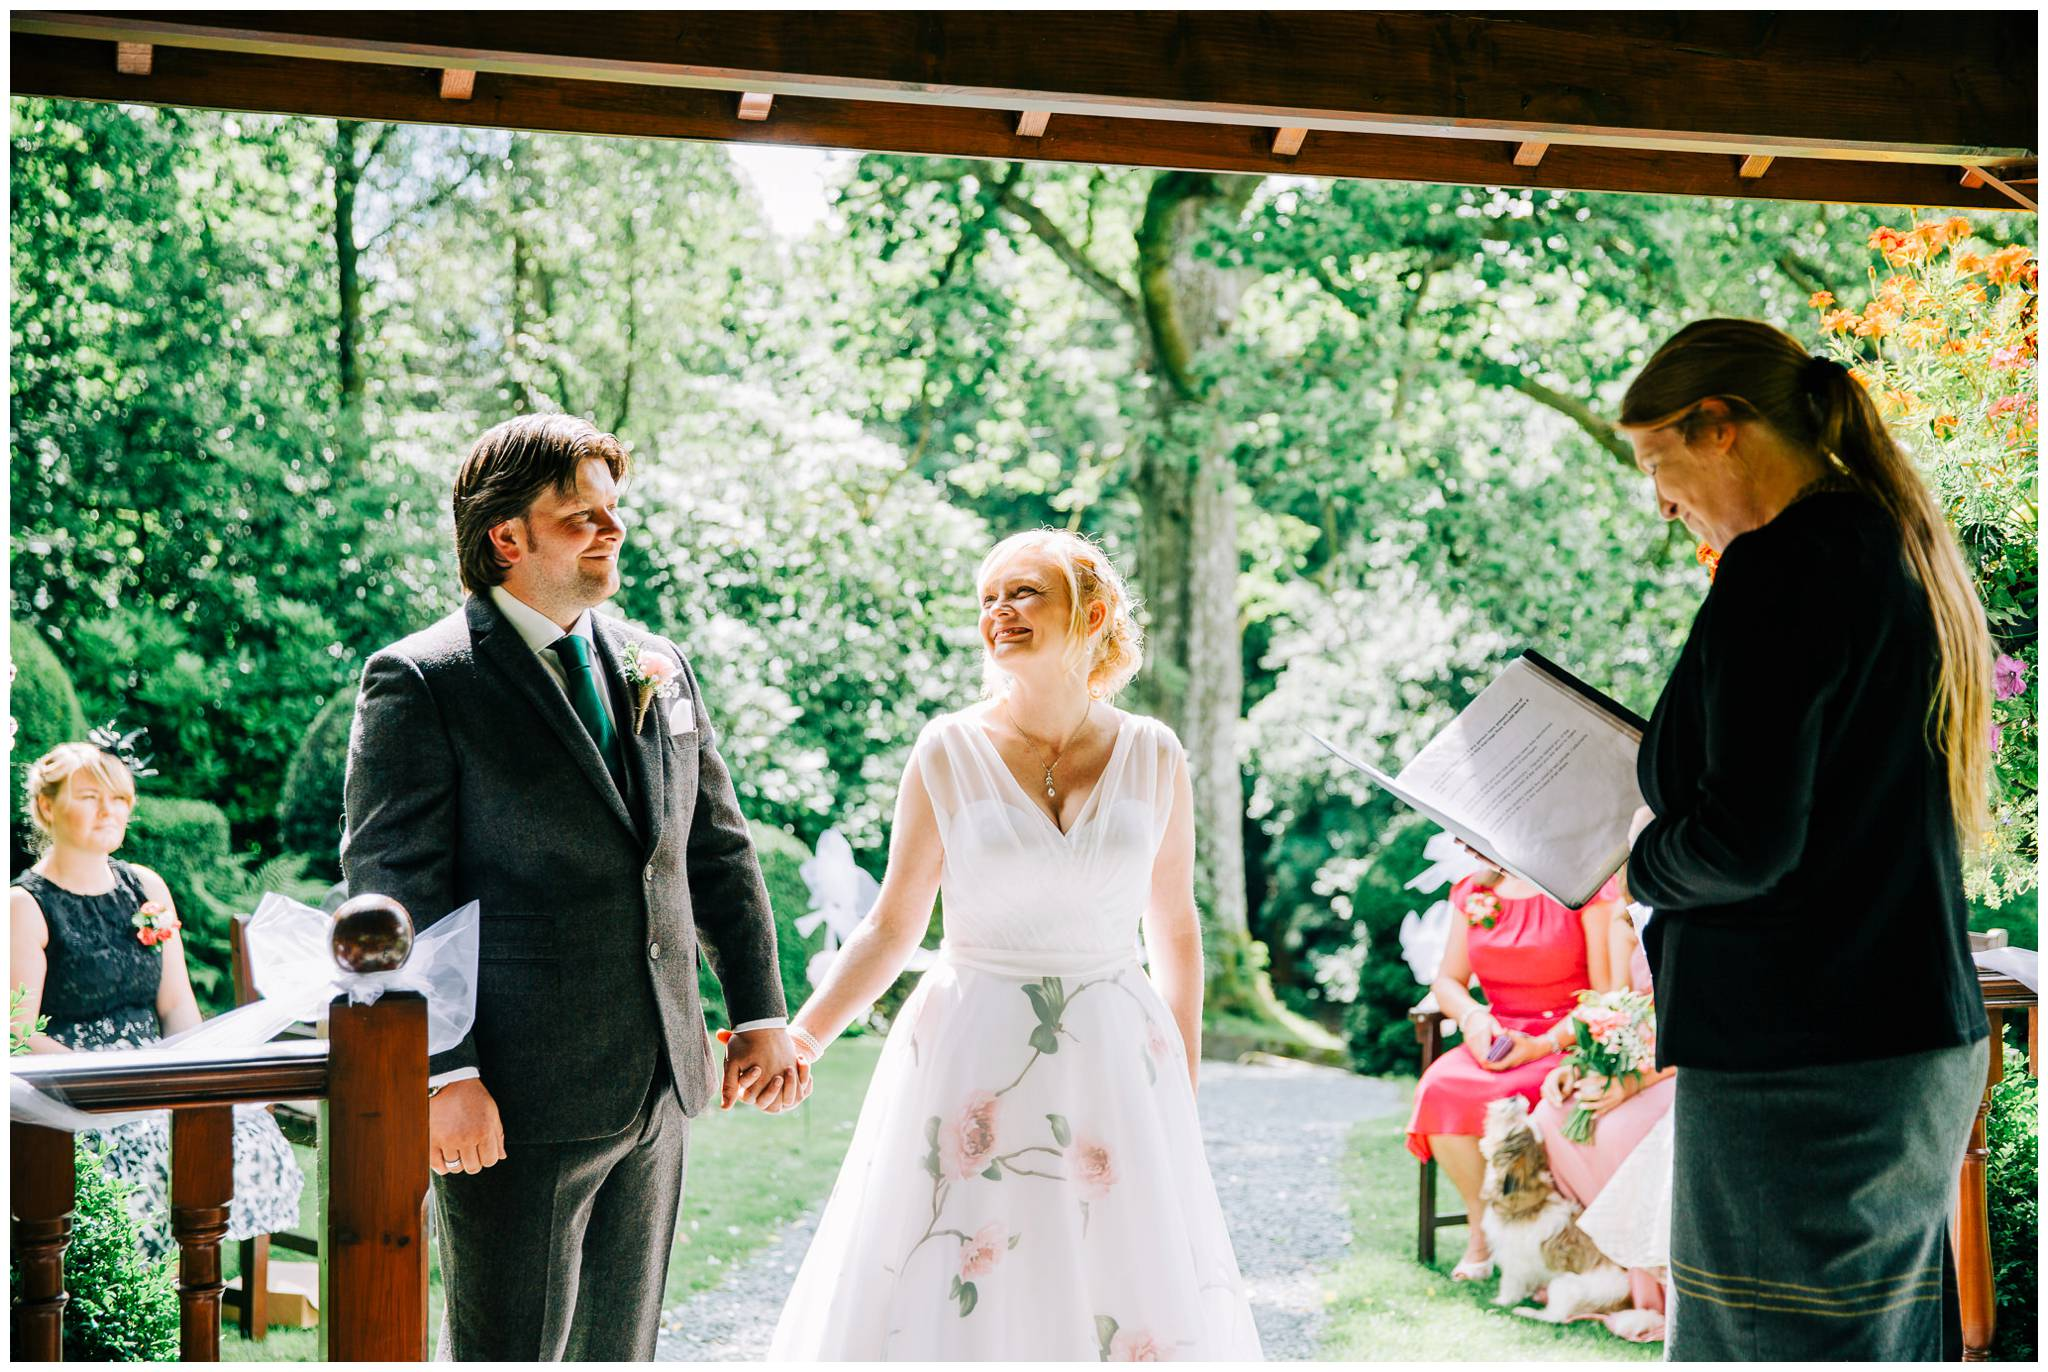 Natural wedding photography Manchester - Clare Robinson Photography_0181.jpg